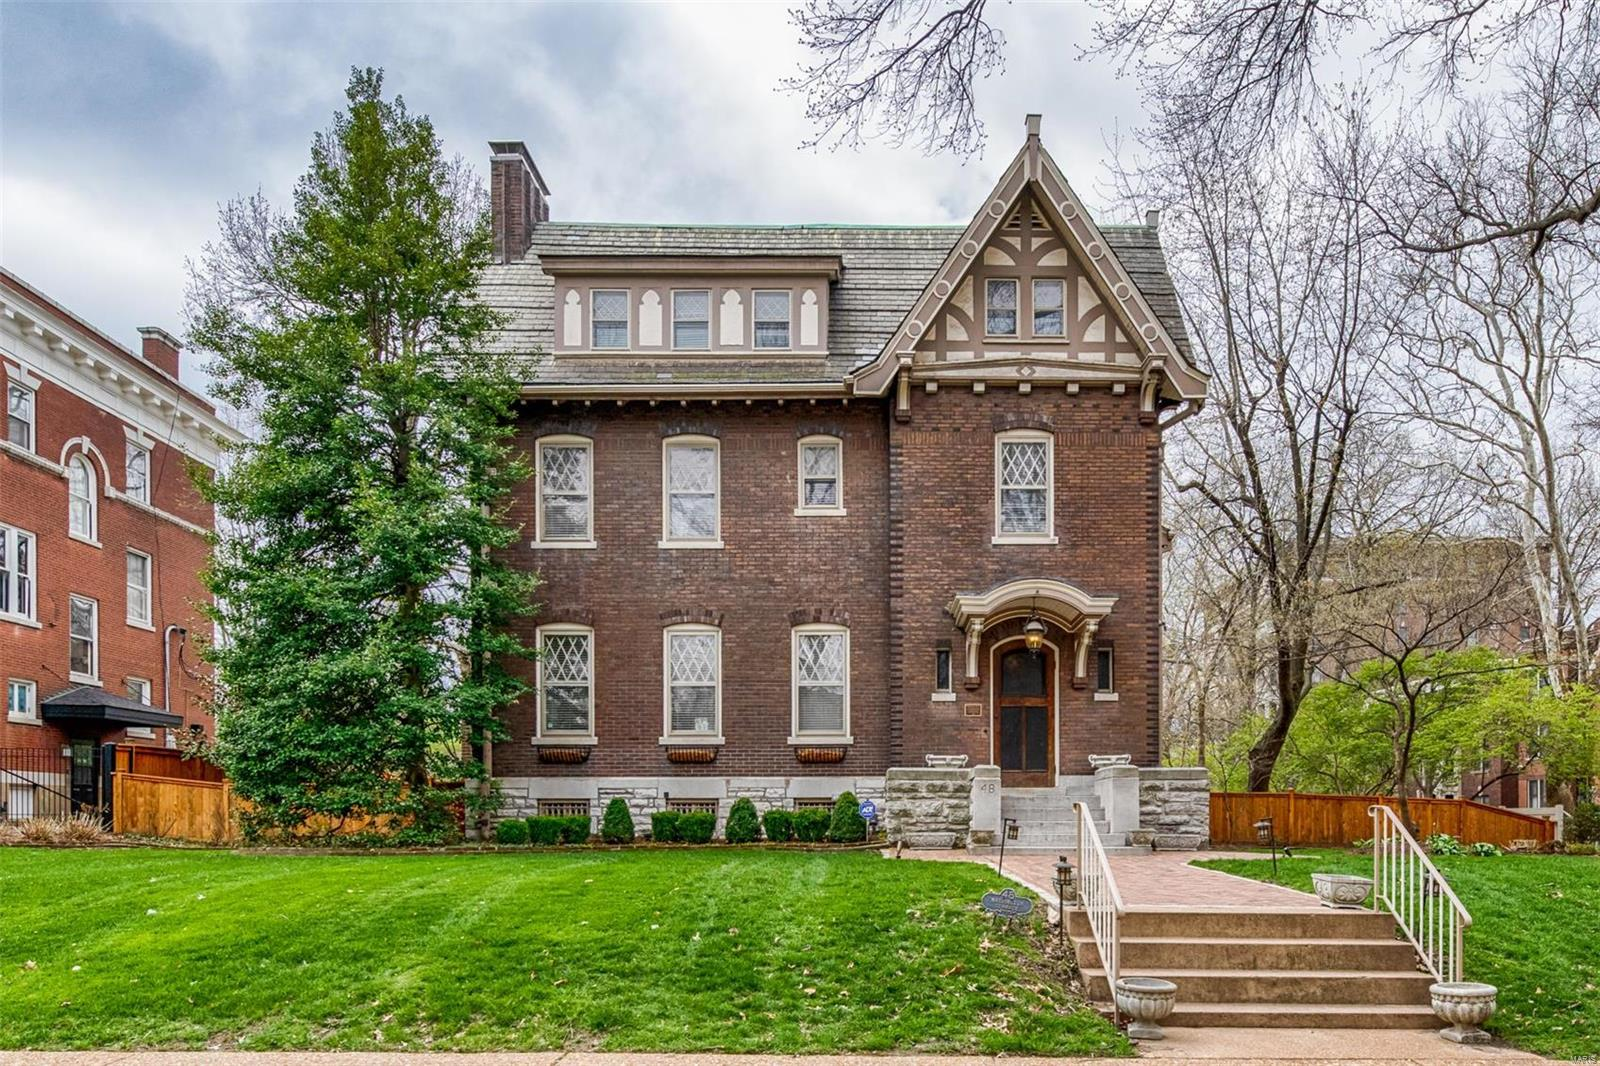 This 110 year old home was designed by forward-thinking World's Fair architect Louis Spiering.  The home truly combines the best of old world elegance and modern convenience. This gracious property is completely updated and light-filled while retaining its historic integrity. Located on one of the largest lots in the neighborhood and at the end of the street. Easy walk to Forest Park, coffee shops, restaurants, Metrolink and more.  You will love the ample closet and storage space throughout this home. Updated kitchen with 6-burner gas stove, center island, walk-in pantry, granite counters & breakfast room. Formal dining room with gothic paneling. Master Bedroom with walk-in closet, private balcony, sitting room & a updated bathroom with walk-in shower and jet tub. 3rd floor is finished with recreation space, 2 more bedrooms & 2 full bathrooms. 2-car garage. Just outside the backyard is the gate to leafy cul-de-sac Clara, flanked with upscale modern and historic condos.